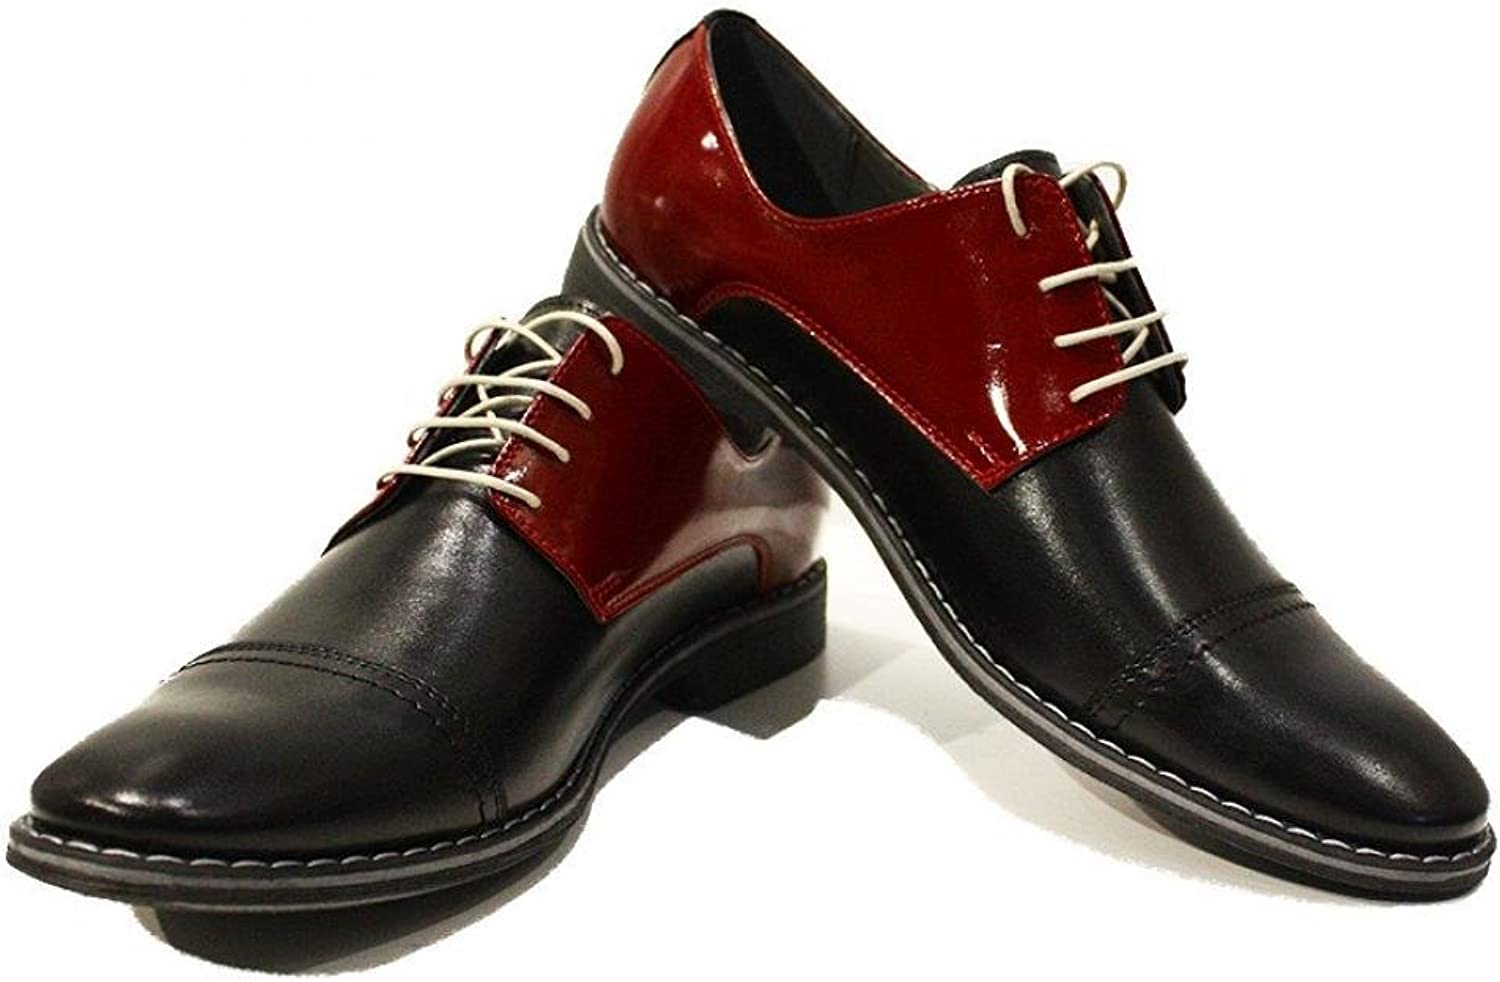 Modello Leone - Handmade Italian Leather Mens color Burgundy Oxfords Dress shoes - Cowhide Smooth Leather - Lace-Up